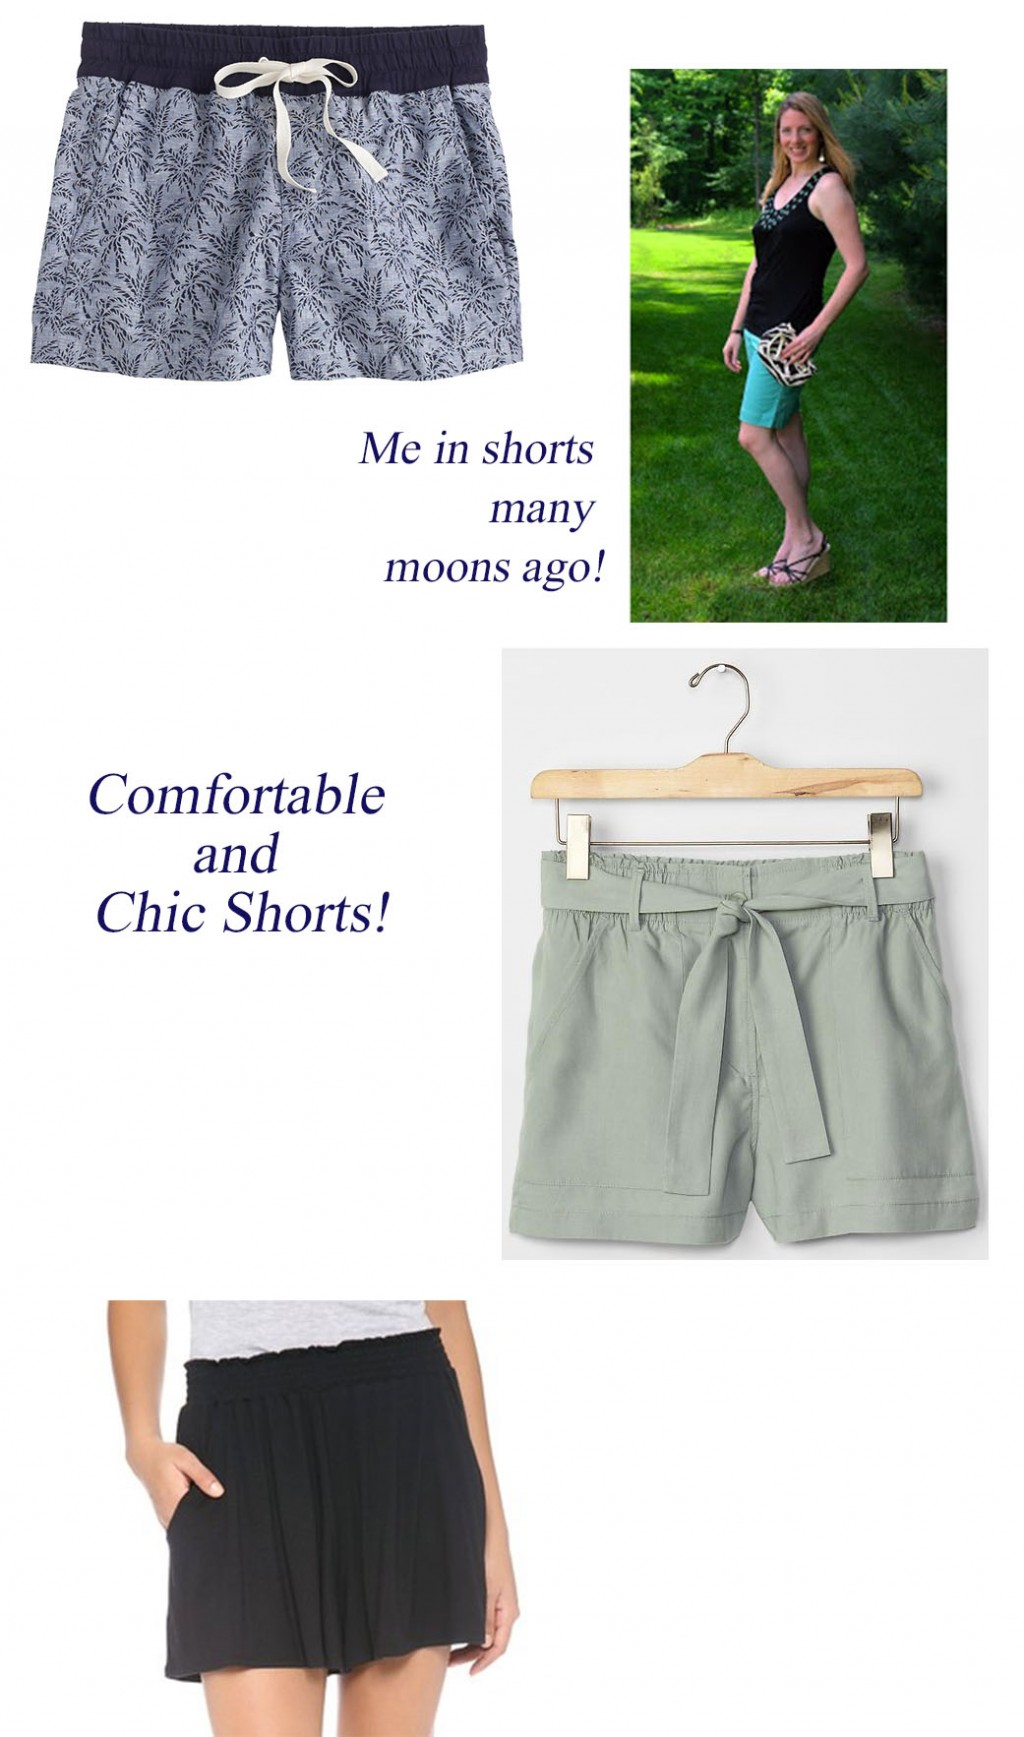 Comfortable and Chic Shorts